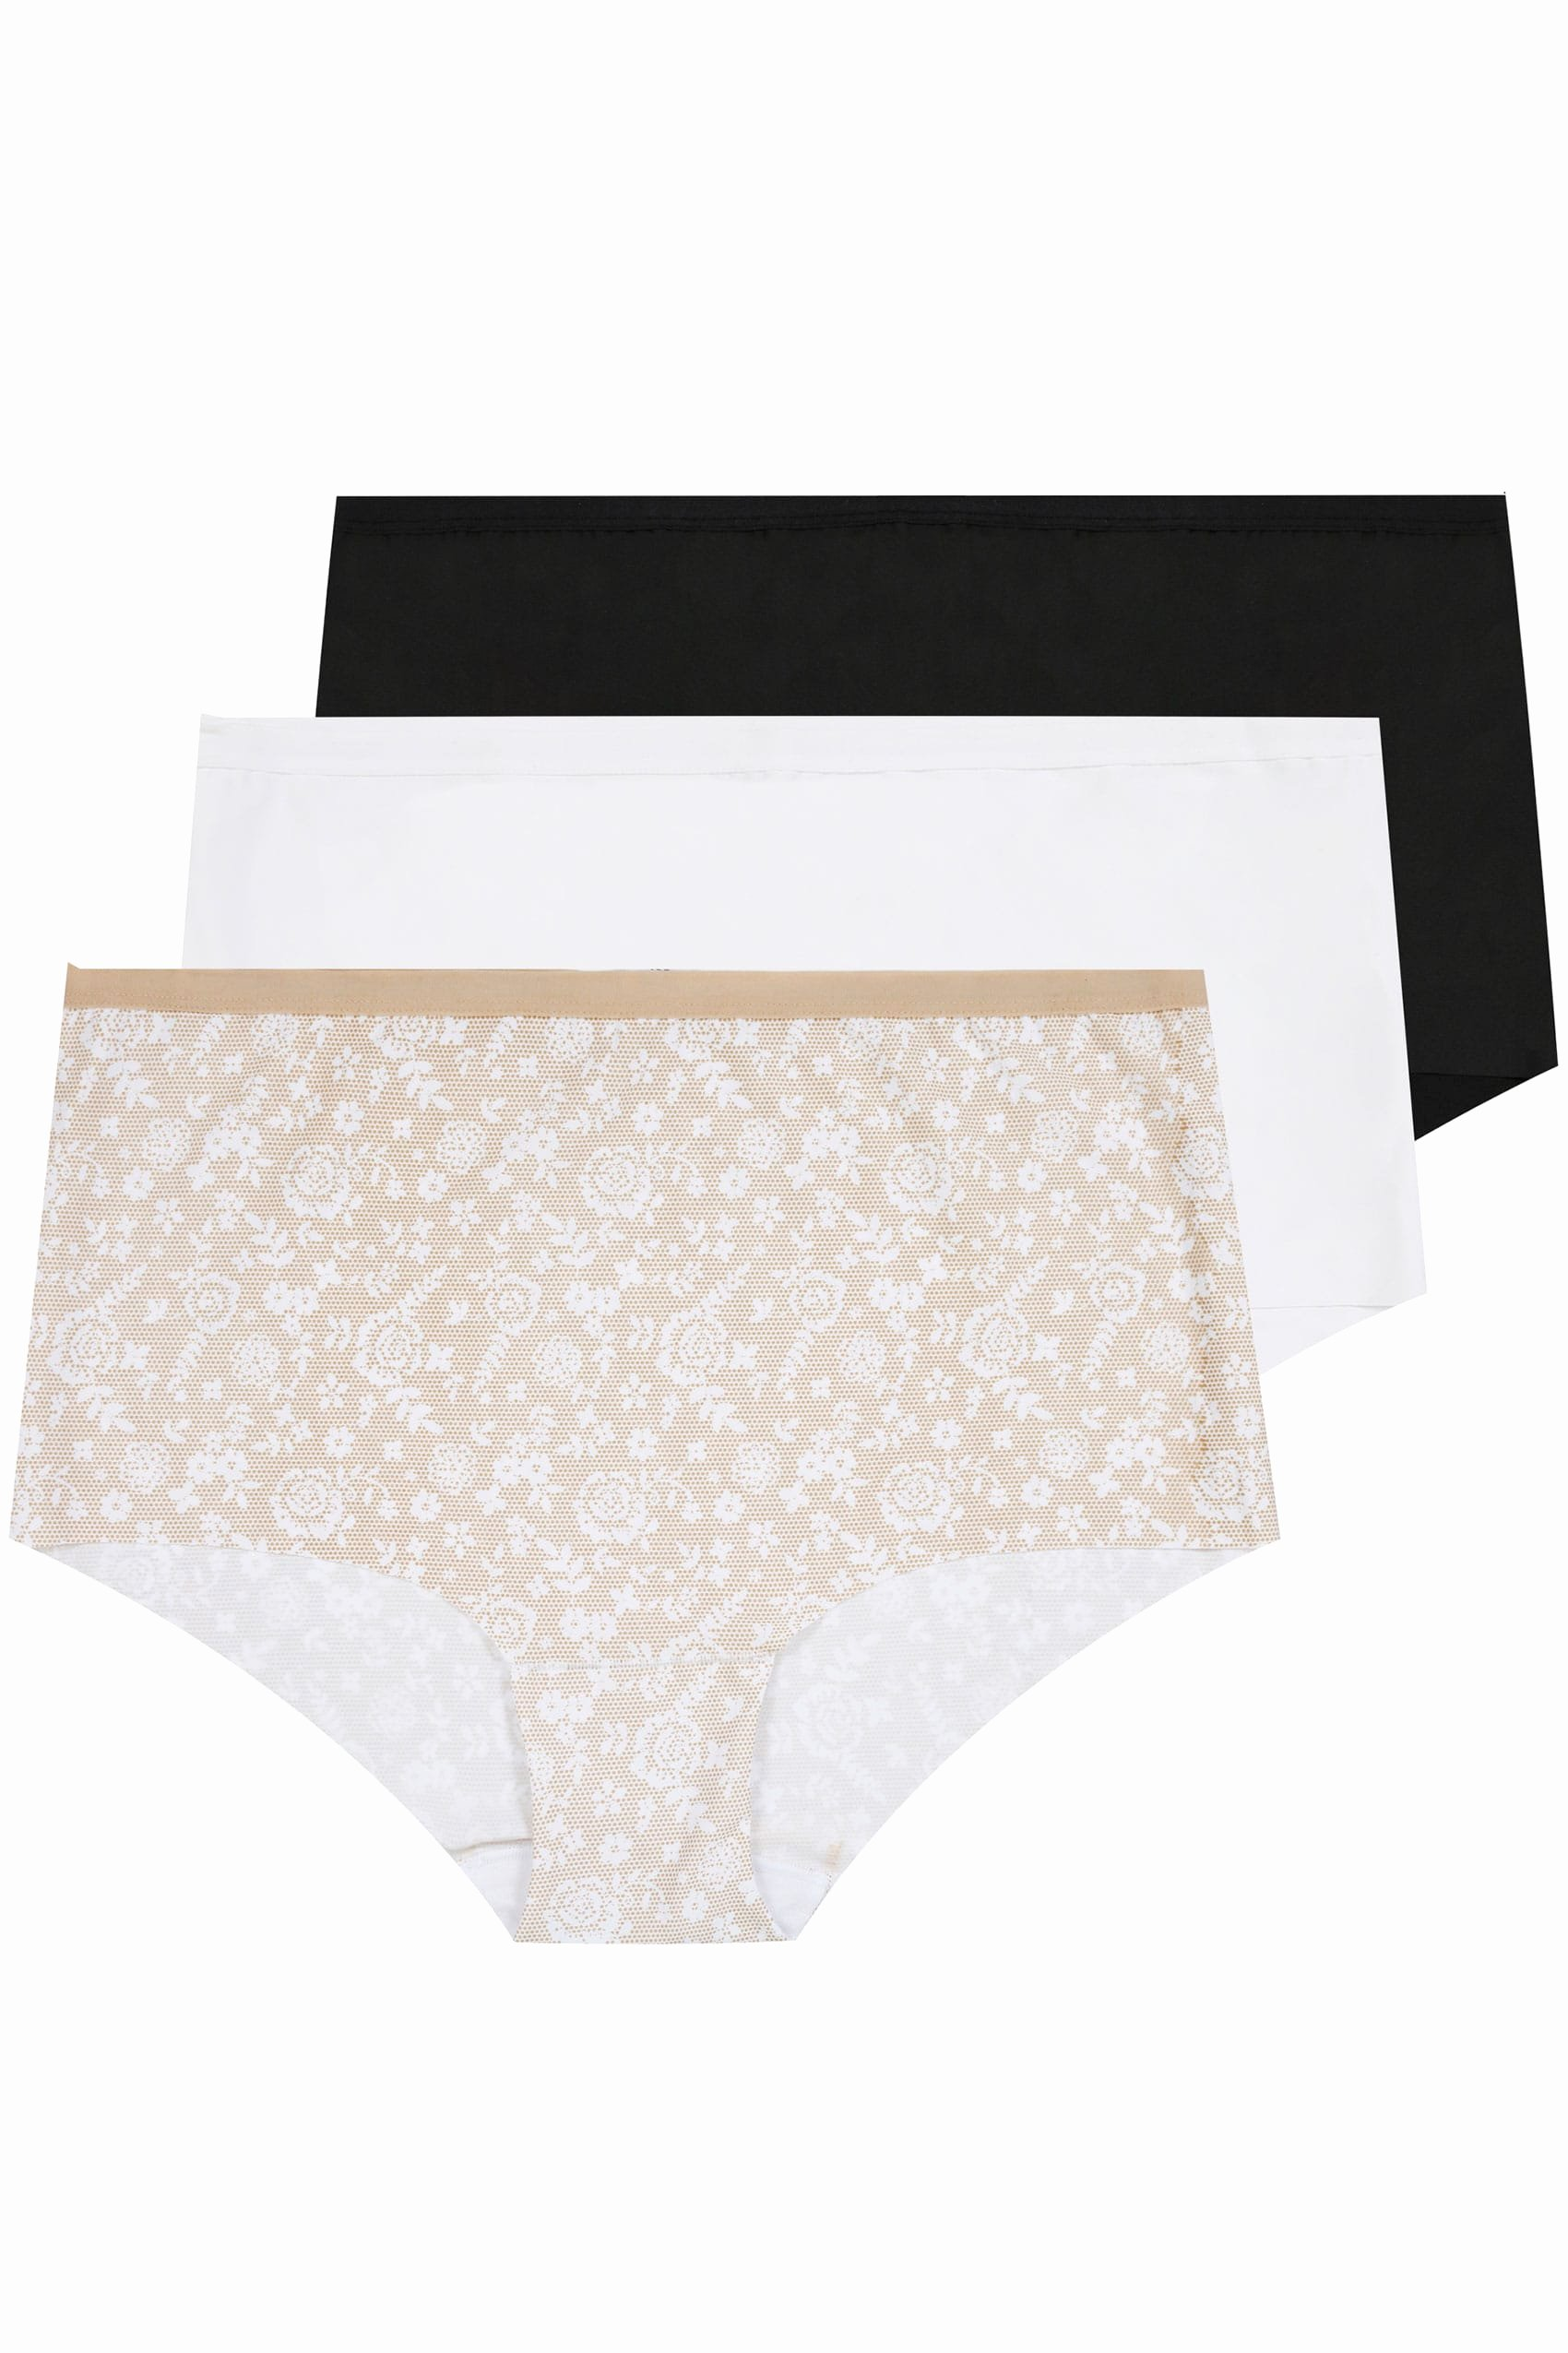 Paid In Full Free Online Luxury 3 Pack Black White & Nude Lace Print No Vpl Full Briefs